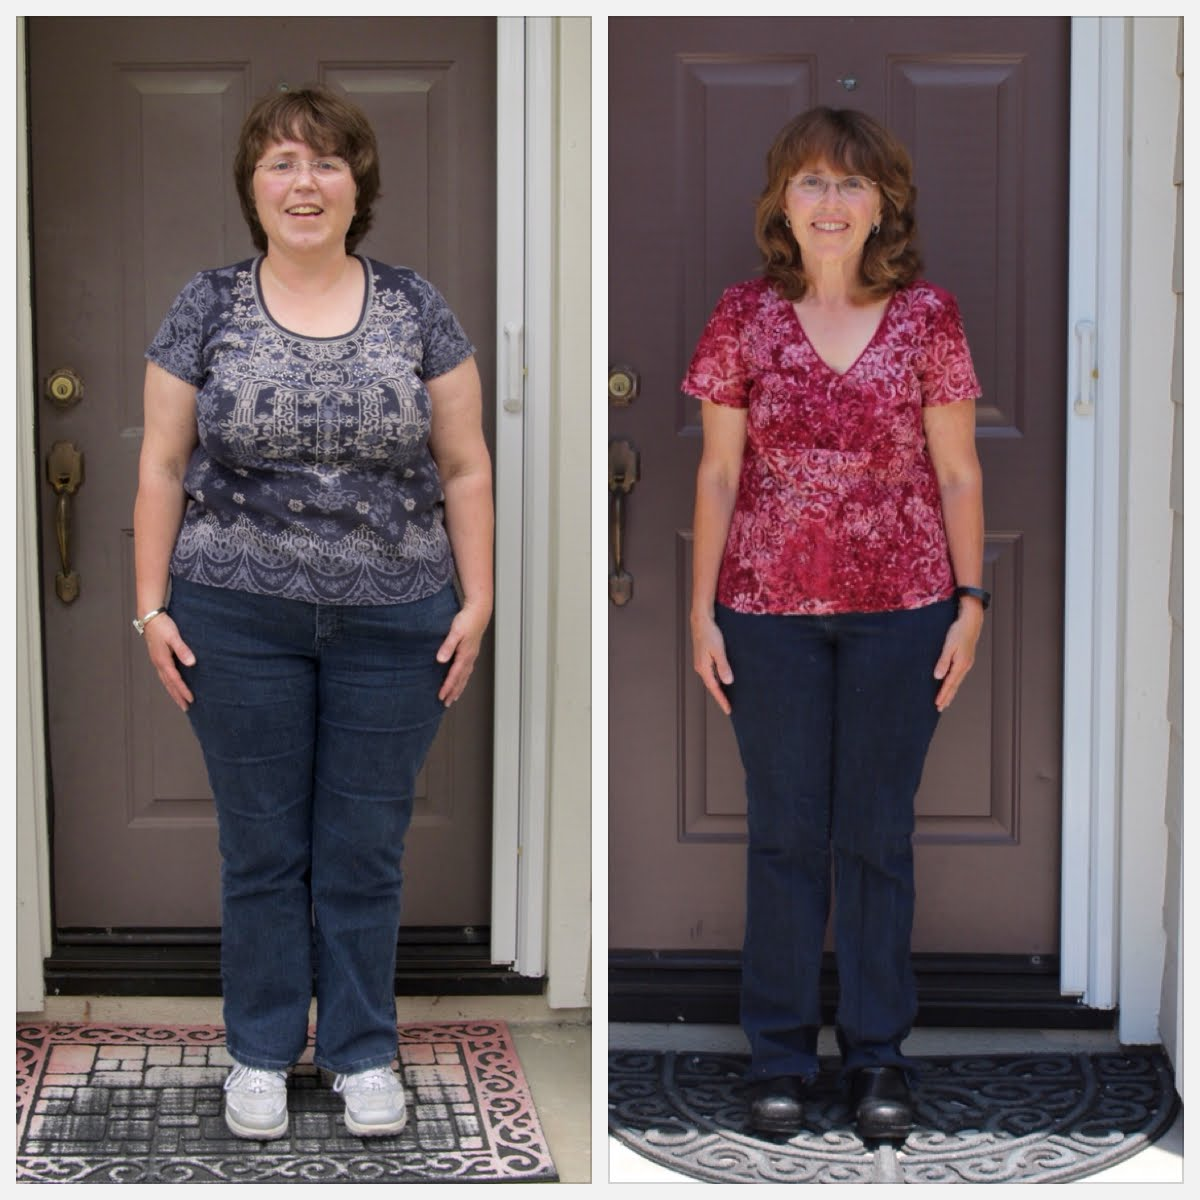 May 2011 before, July 2015 after